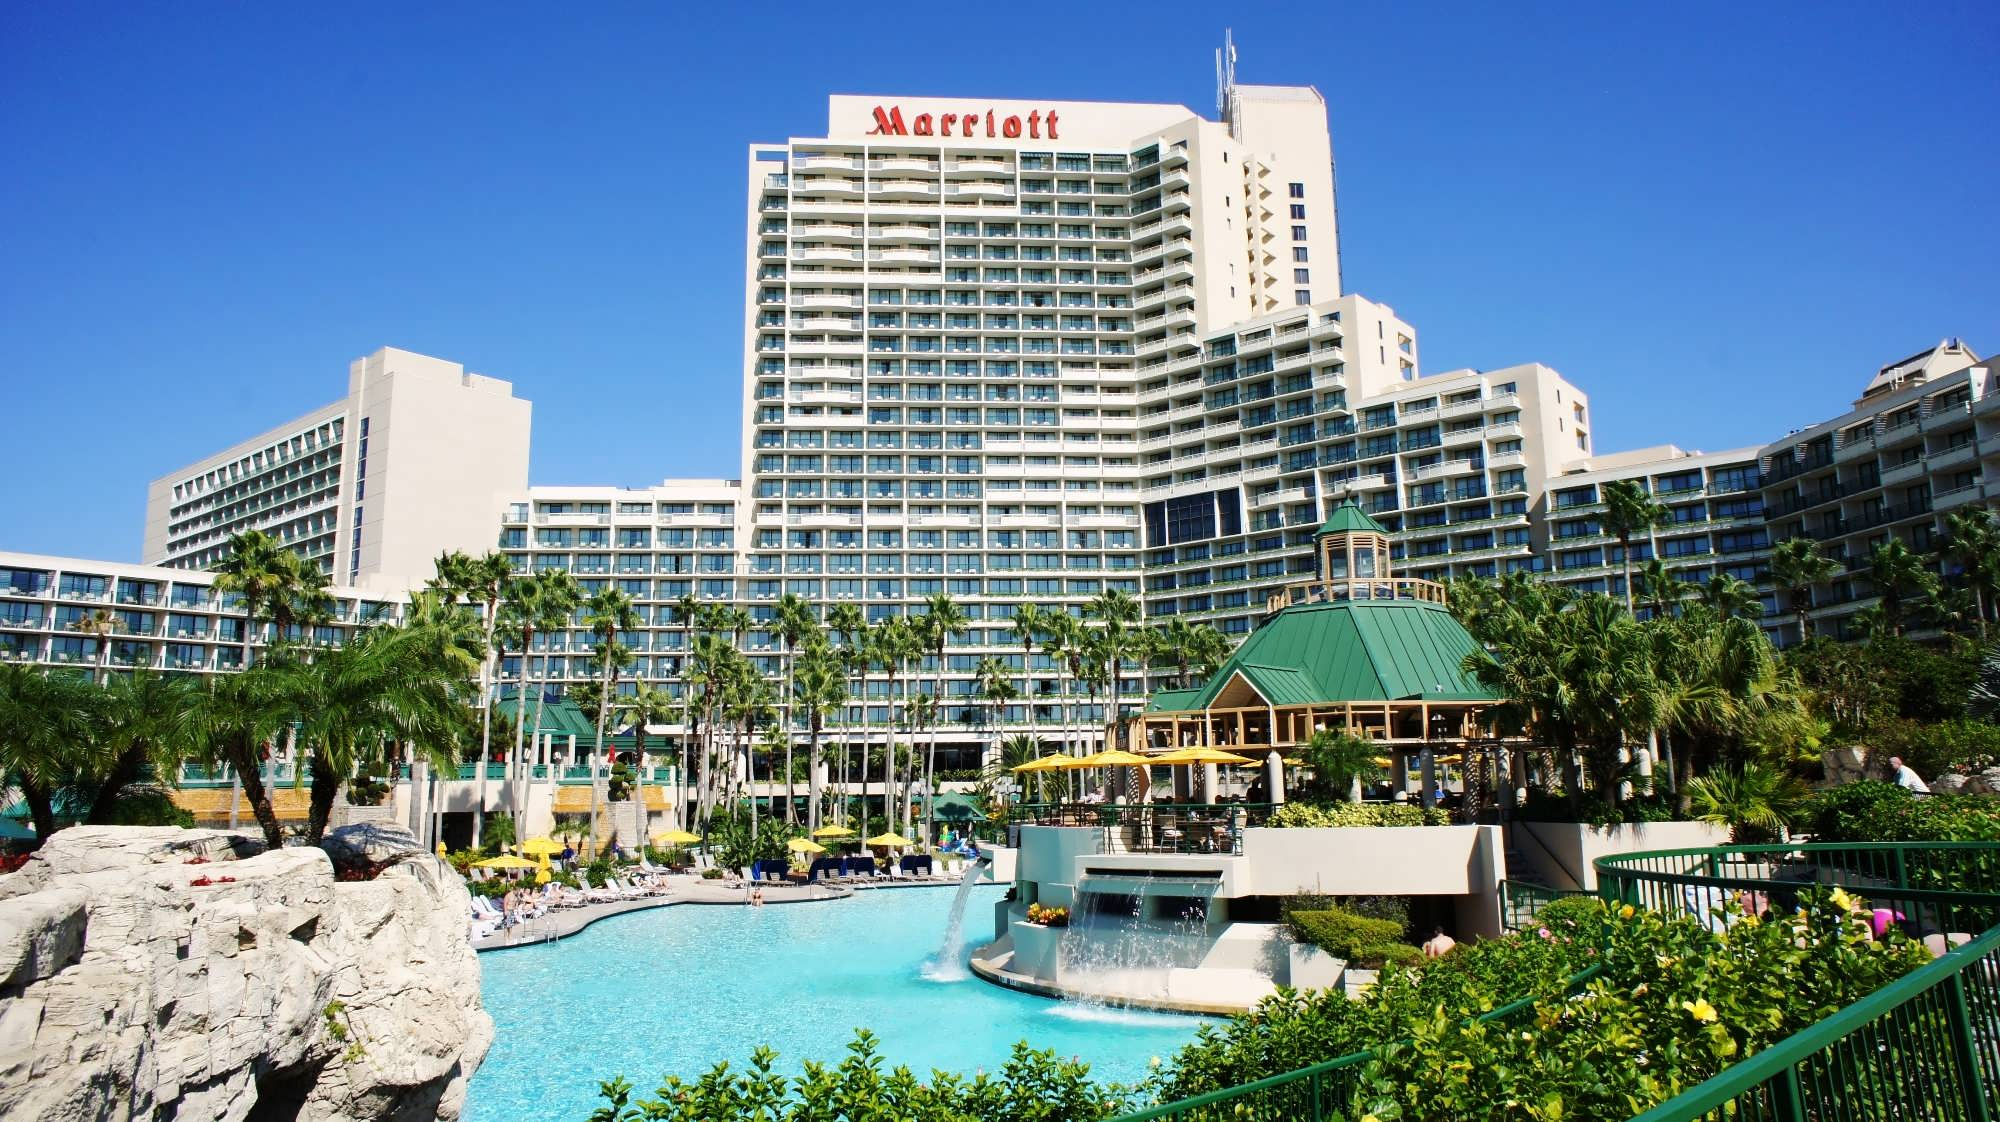 Family Fun in Florida. Similarly to California, there are Category 5 Marriott hotels all over Florida that can put you very close to everything from theme parks to .